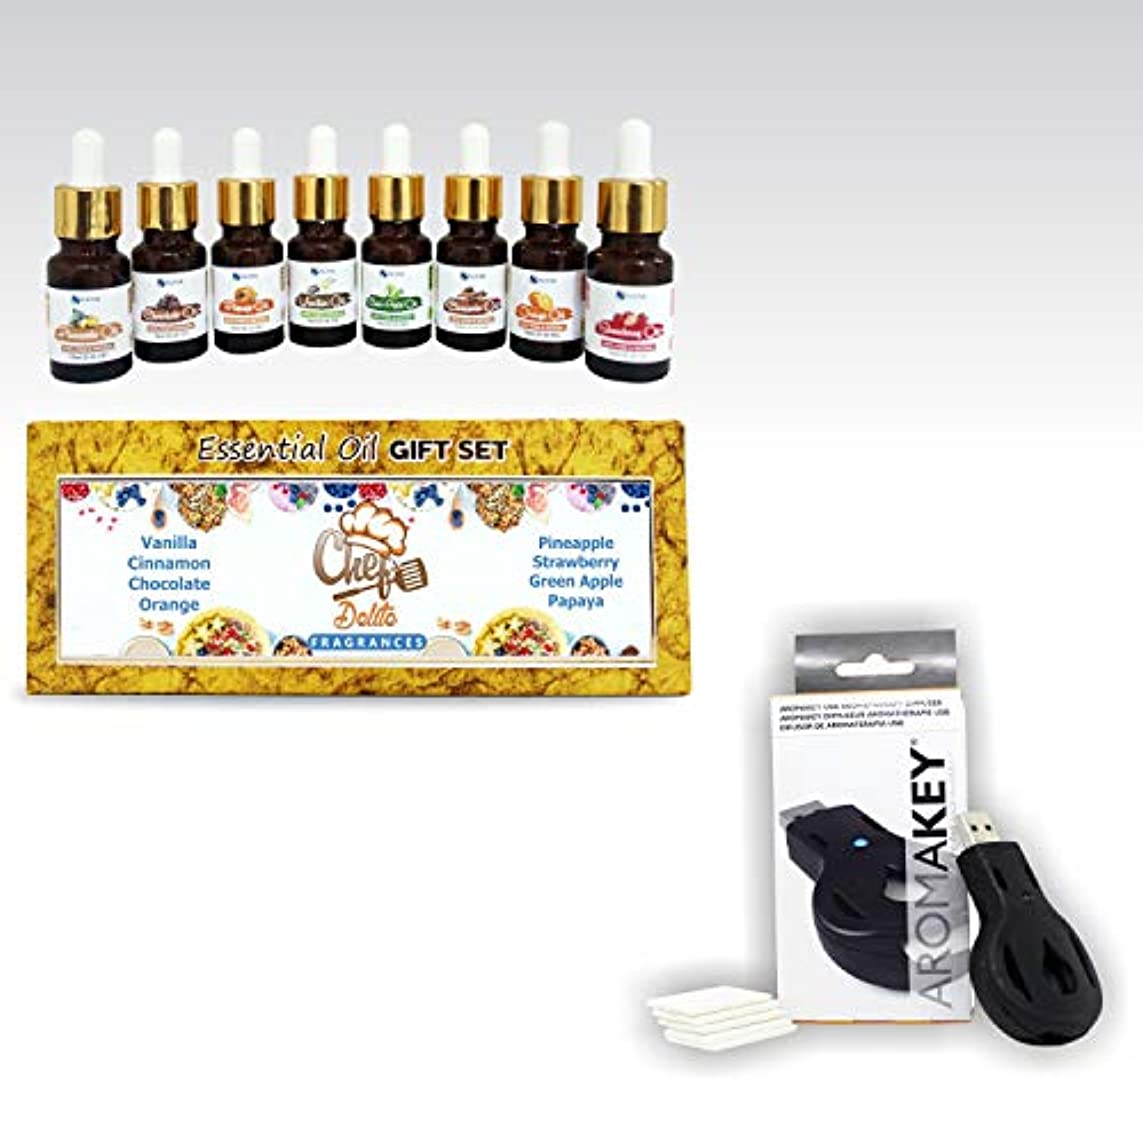 Aromatherapy Essential Oils - Chef's Delite (Pack of 8) 100% Pure & Natural Plus Aromakey USB Personal Diffuser...